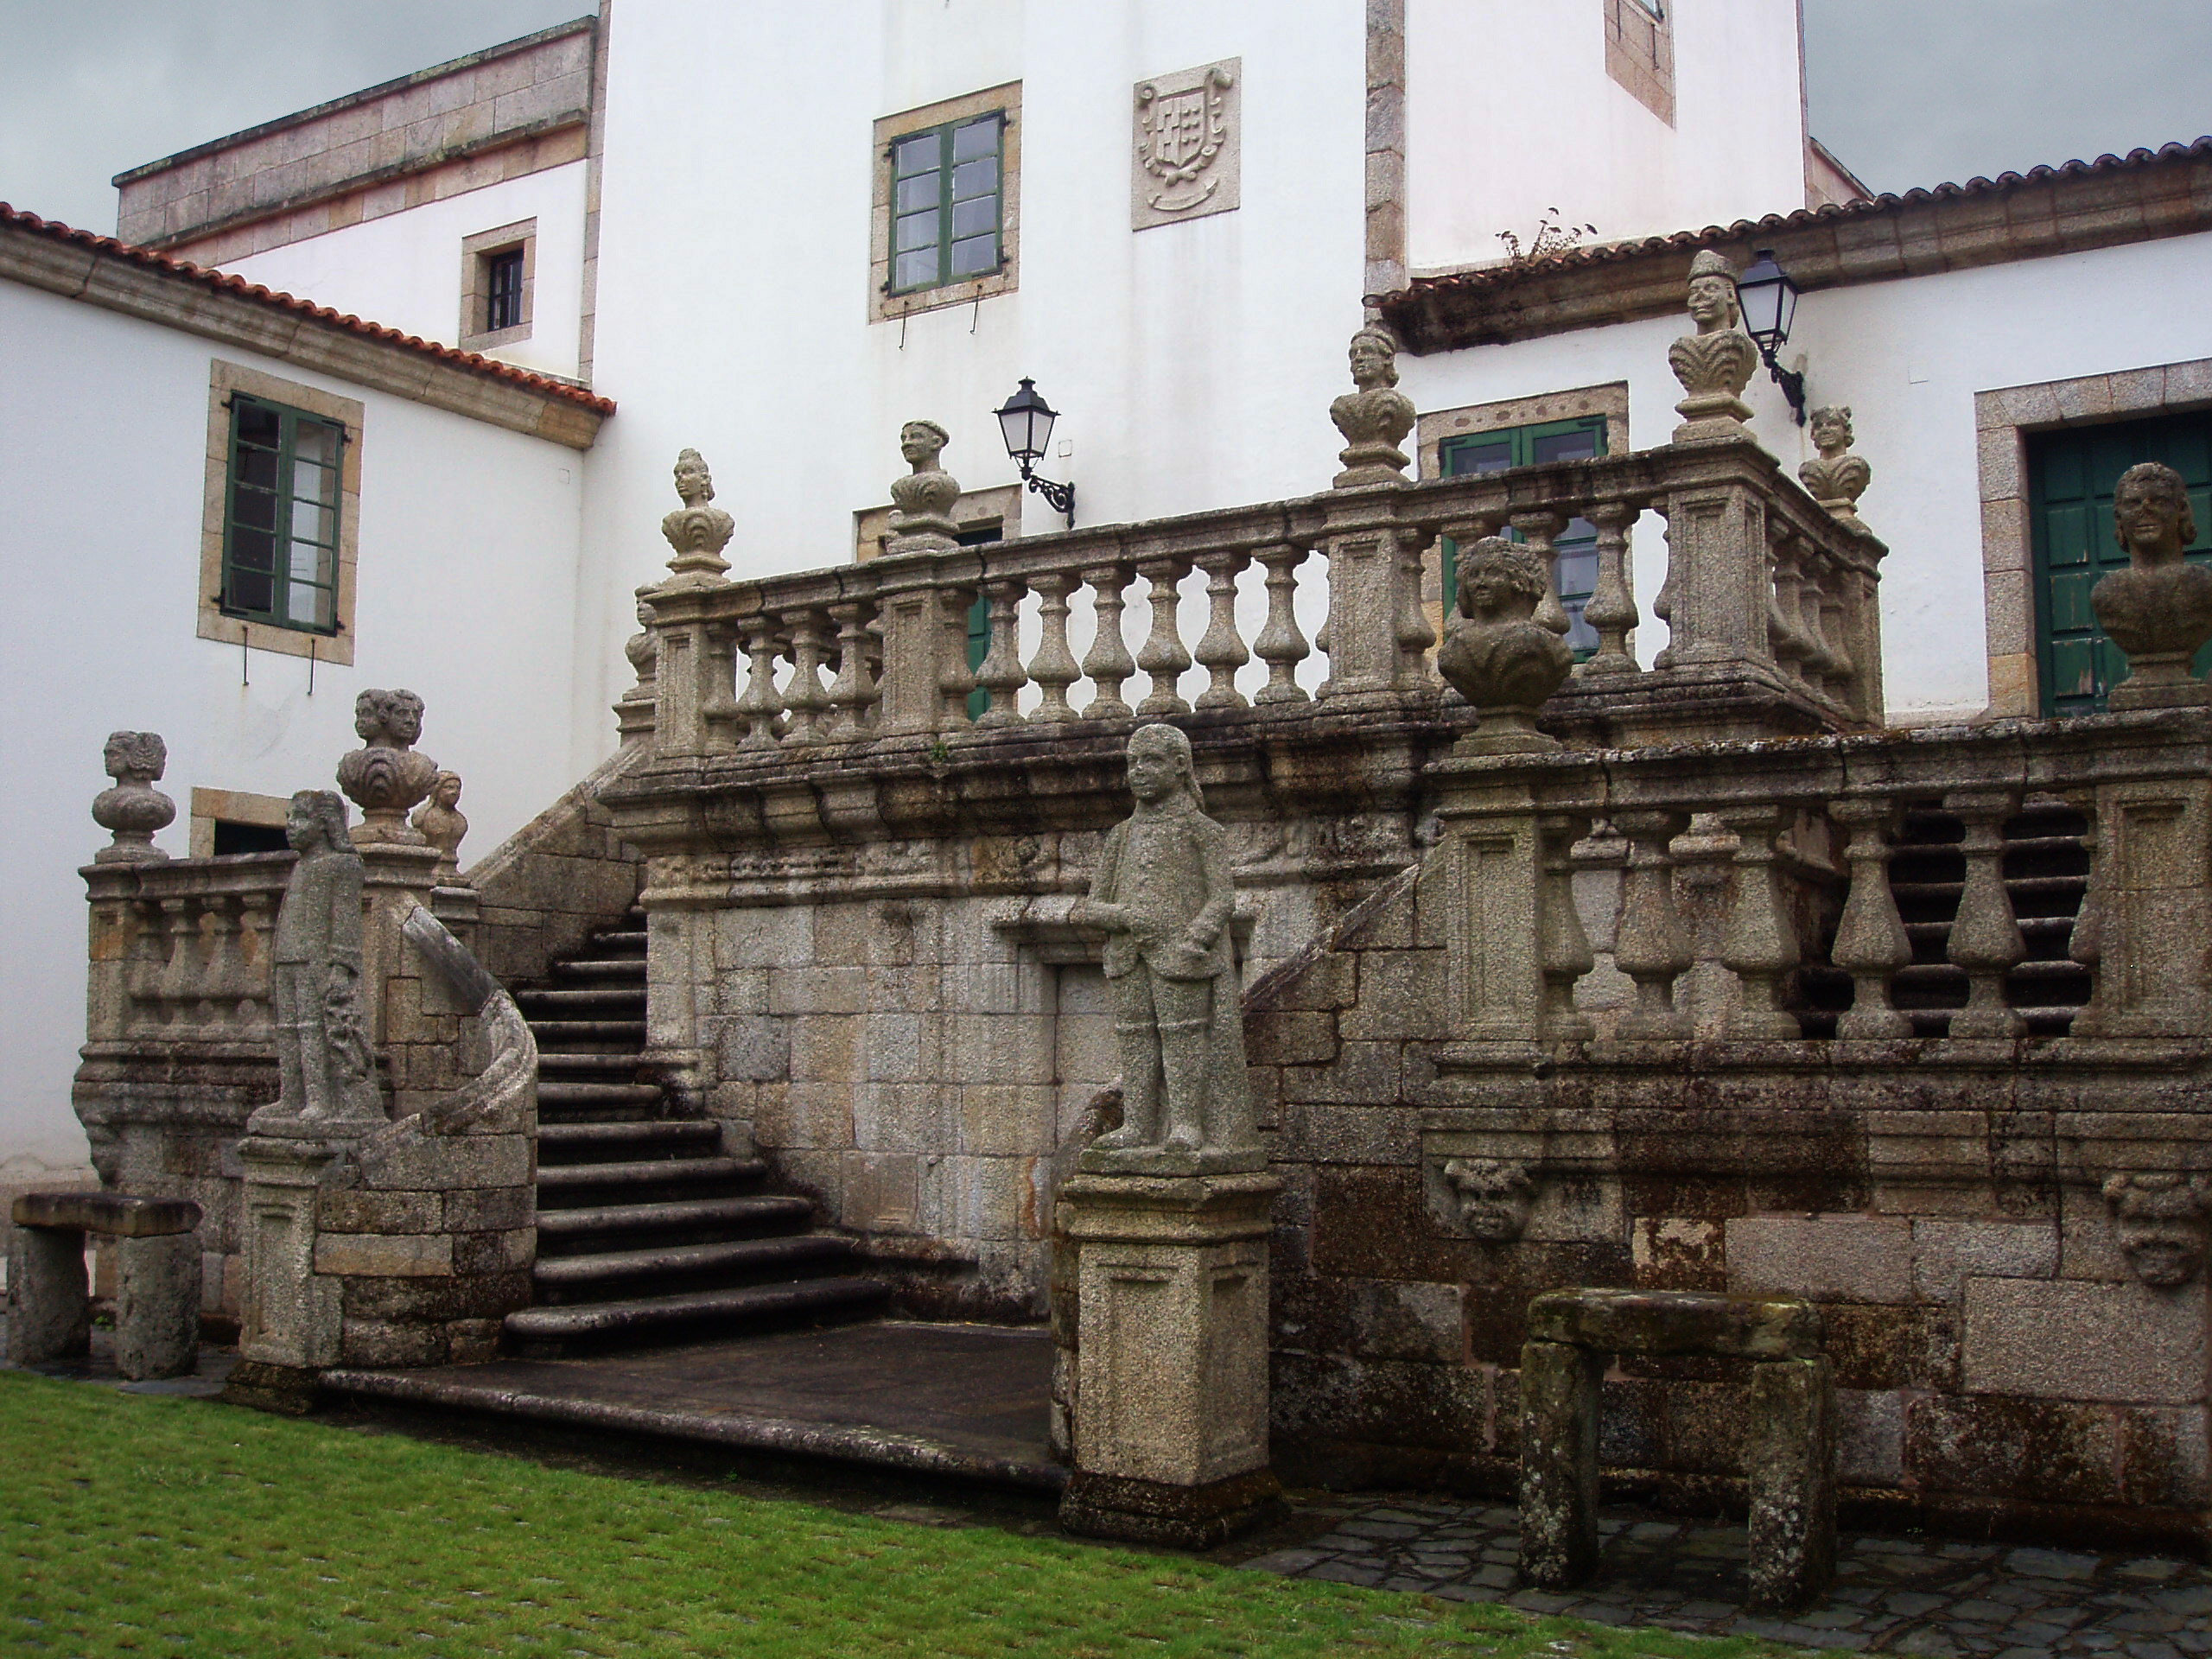 https://upload.wikimedia.org/wikipedia/commons/1/17/Escalinata_posterior_Pazo_Mari%C3%B1%C3%A1n_II.jpg